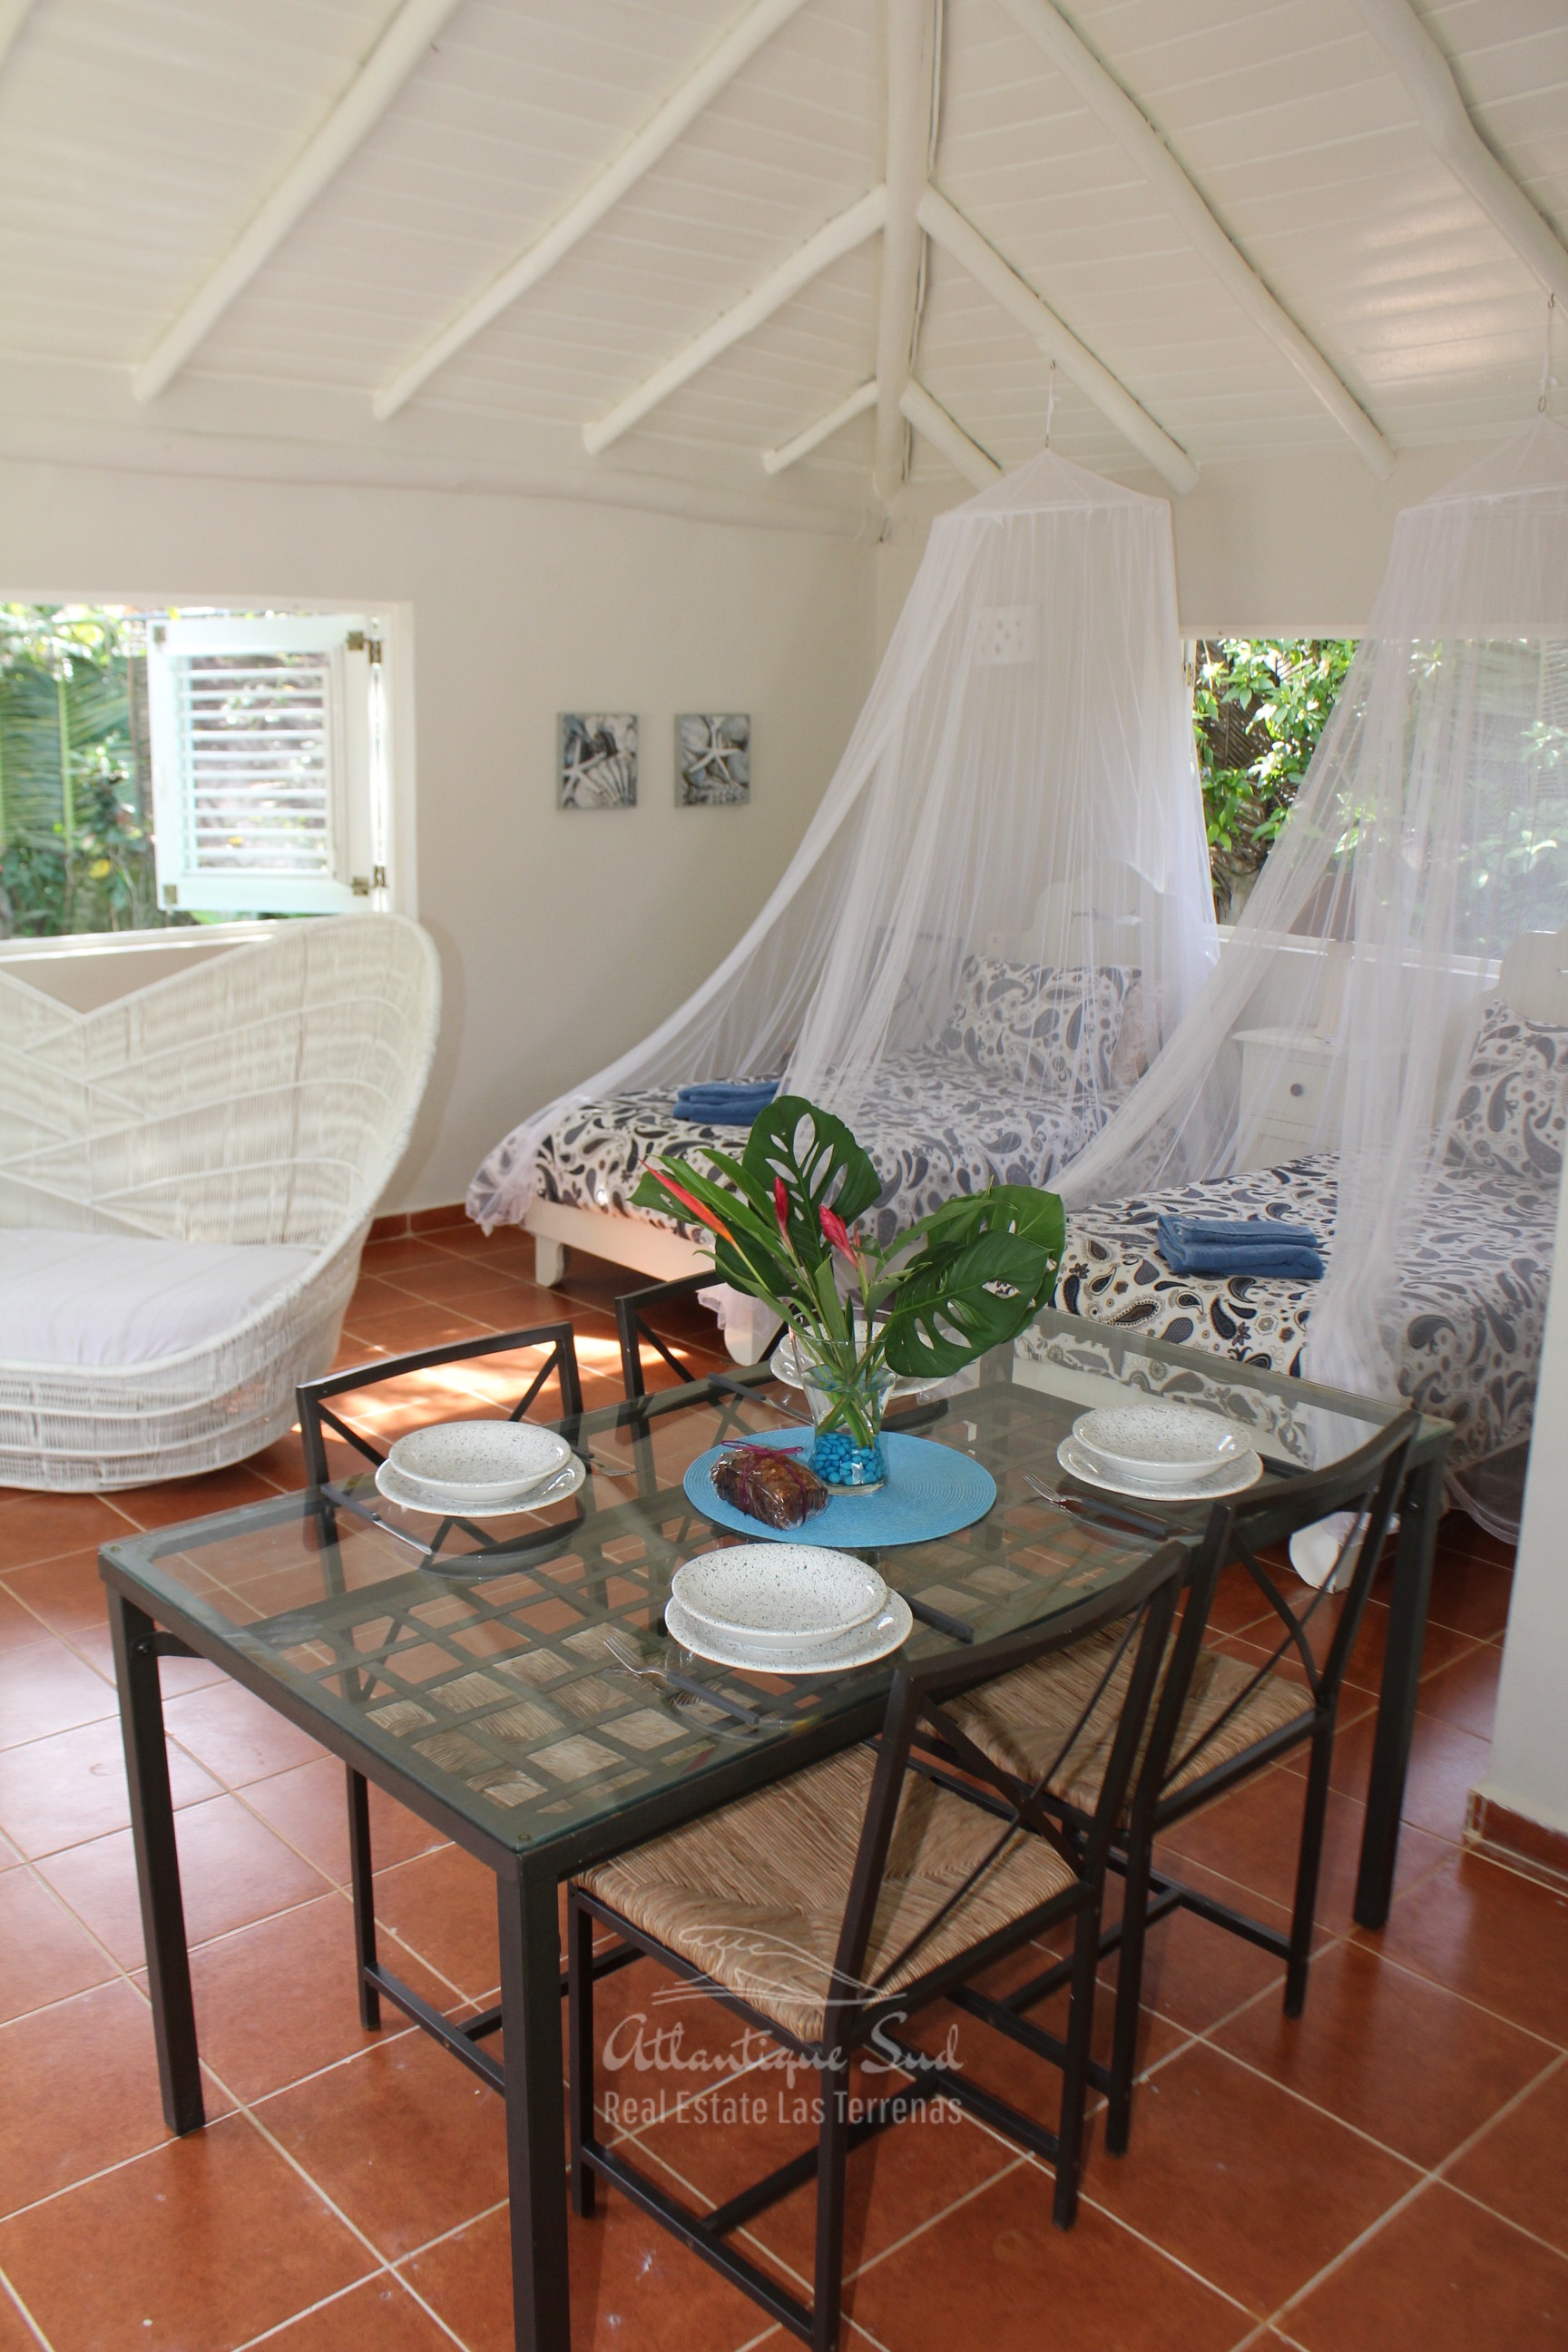 Domain of main villa and 5 separate bungalows ideal for bed & breakfast in Las Terrenas Real Estate Dominican Republic1 (10).jpg